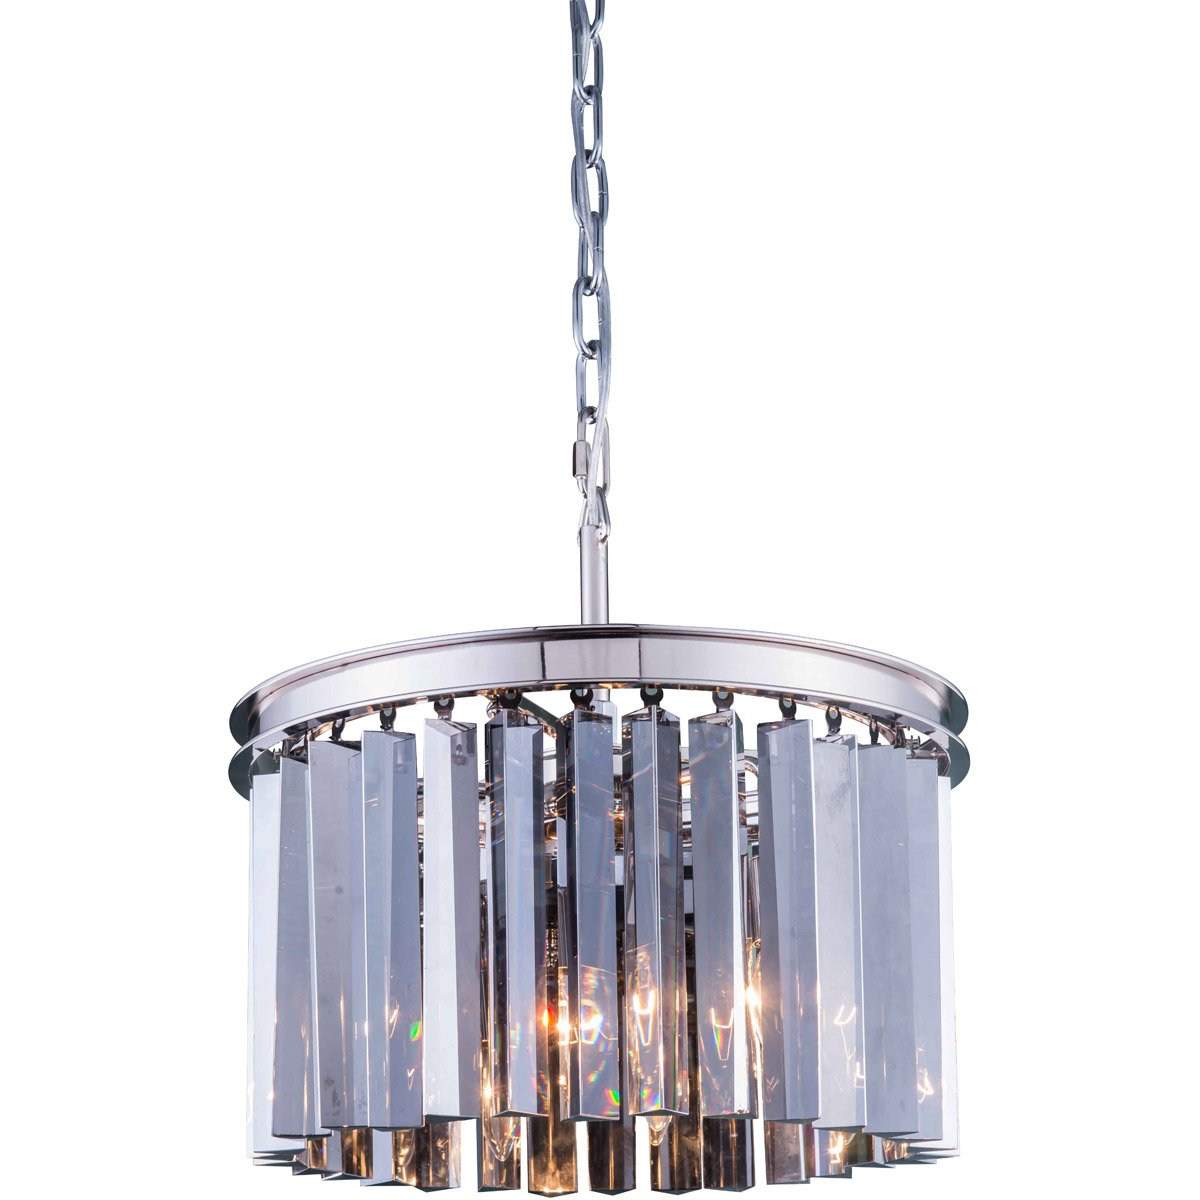 Sydney 16 Crystal Mini Pendant With 3 Lights - Polished Nickel Finish And Grey Crystal Pendant